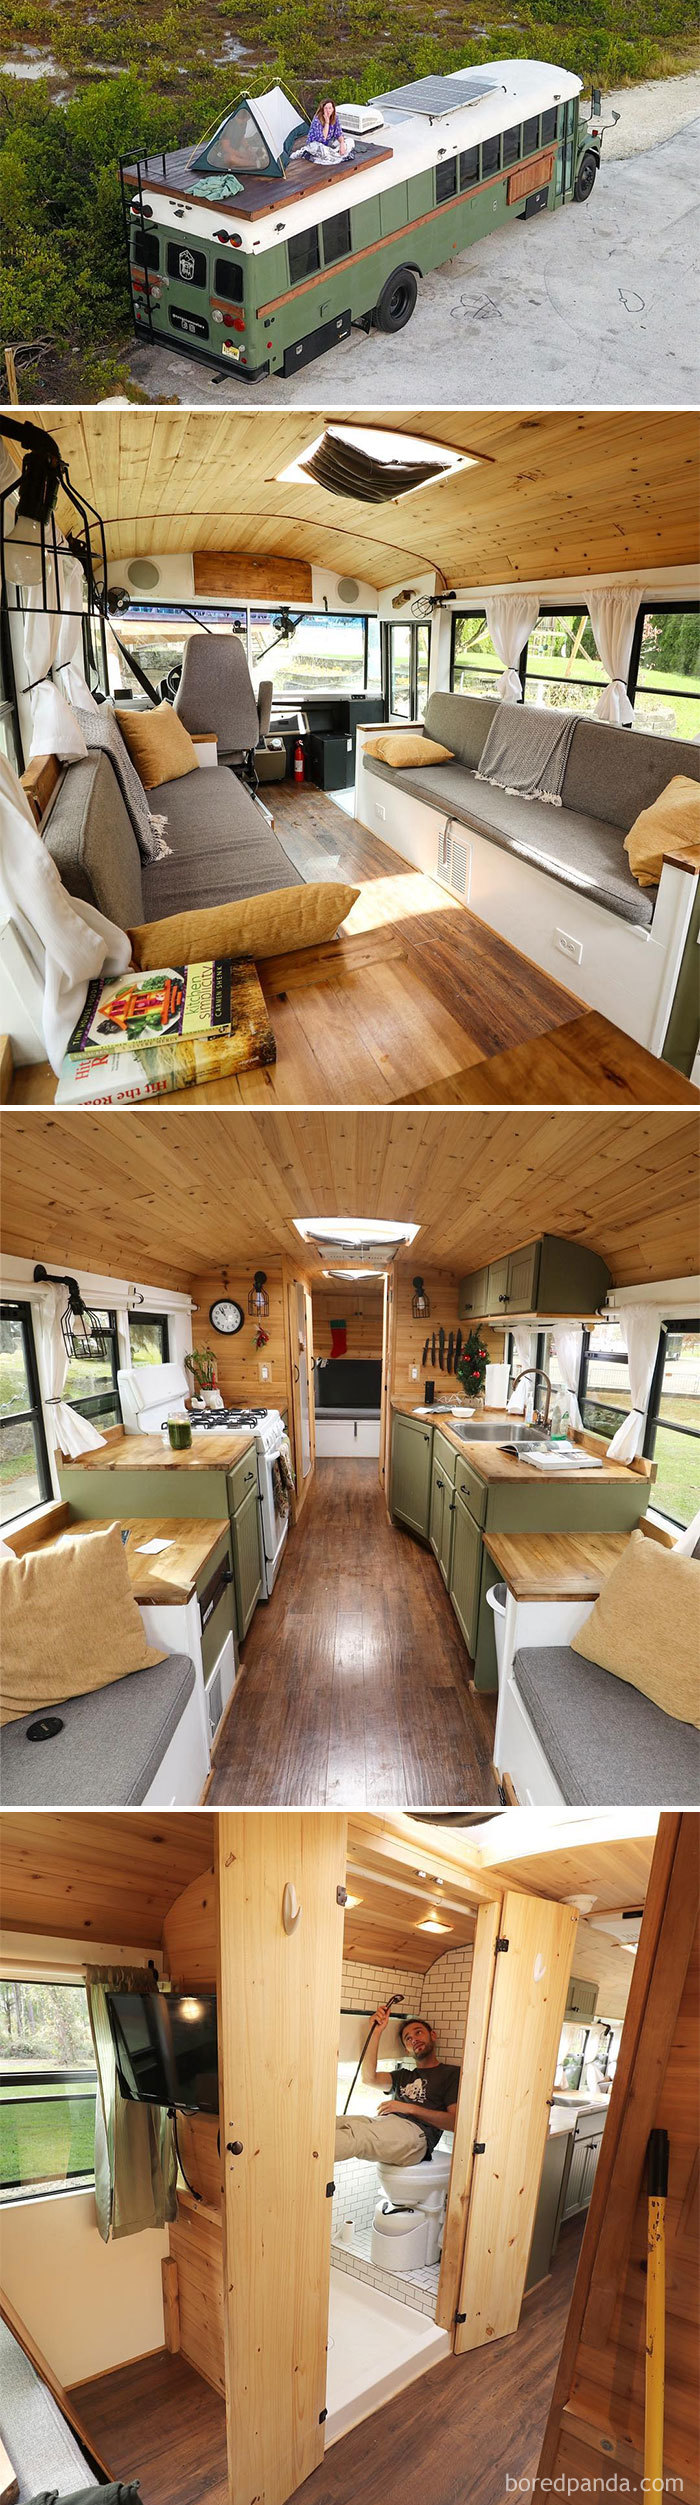 30 Of The Most Epic Bus And Van Conversions Bored Panda